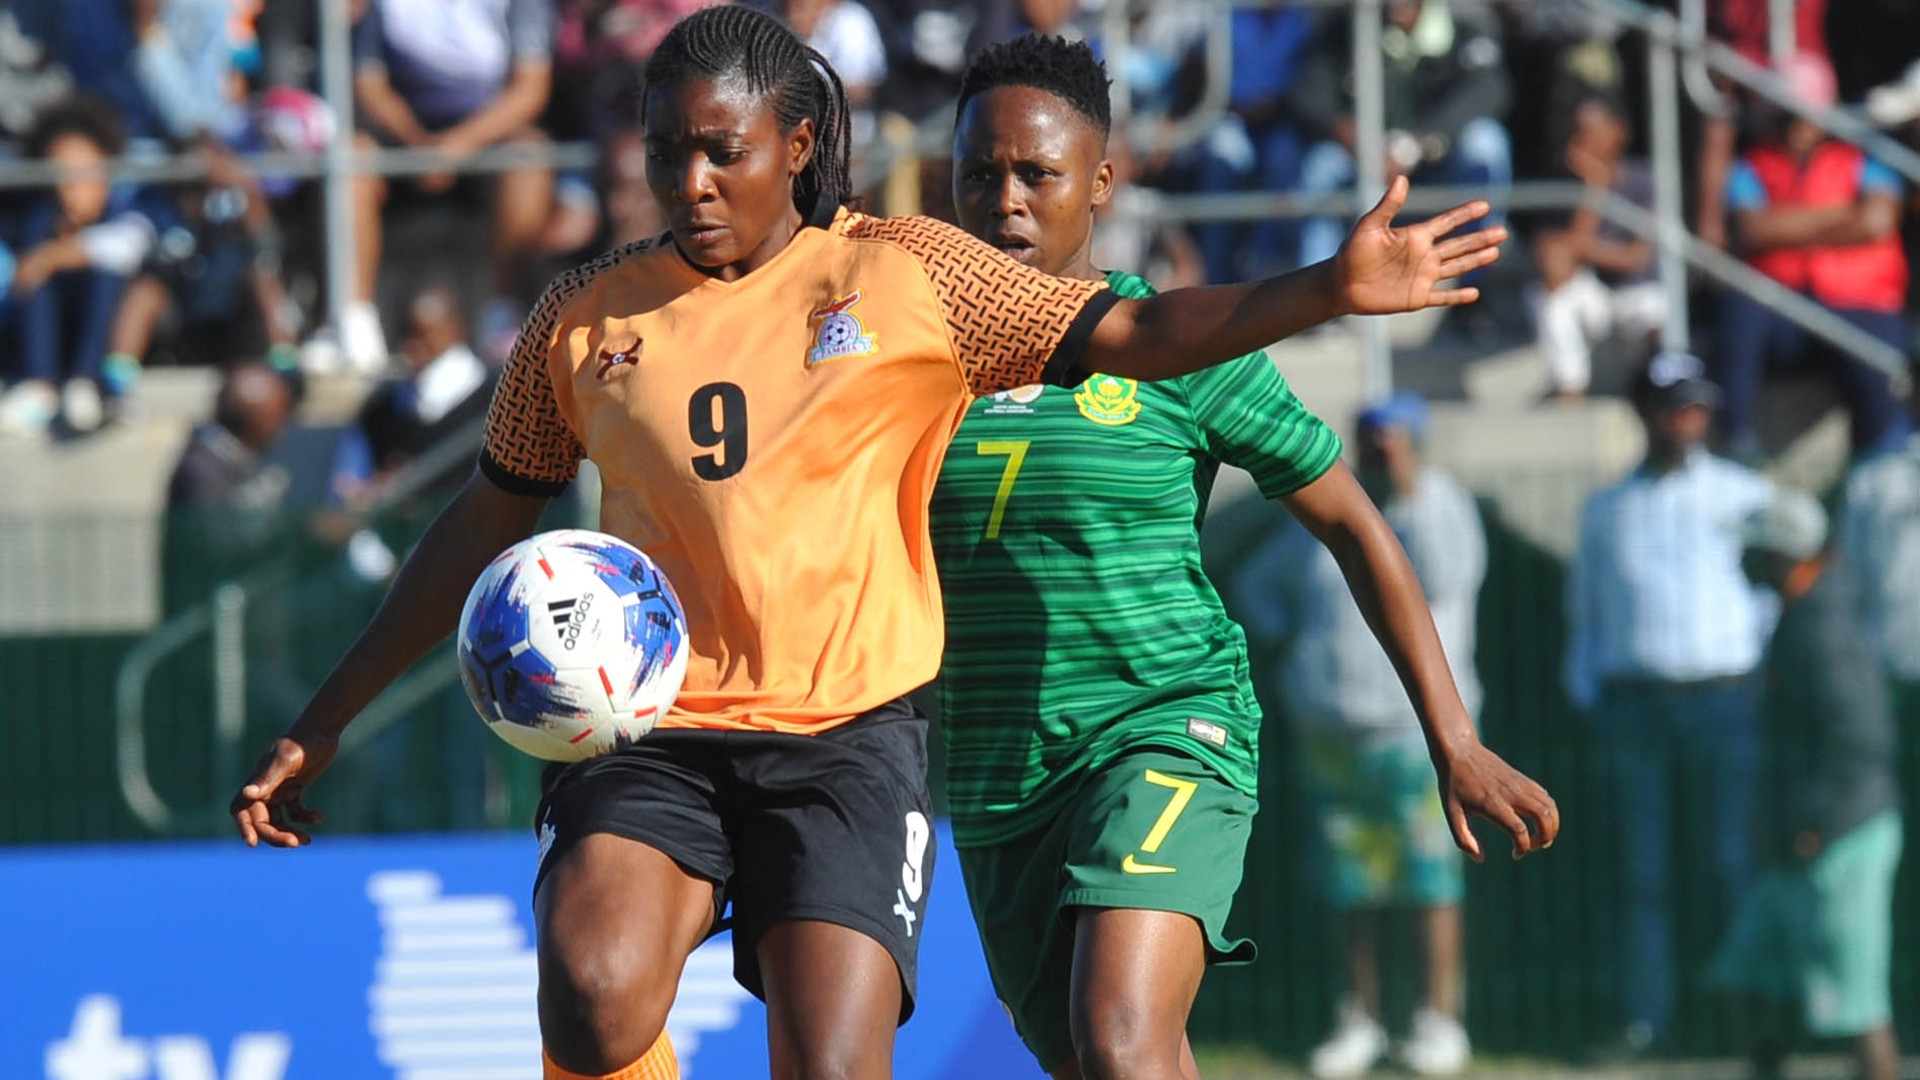 Zambia announce pre-Olympic Games friendly with Chile